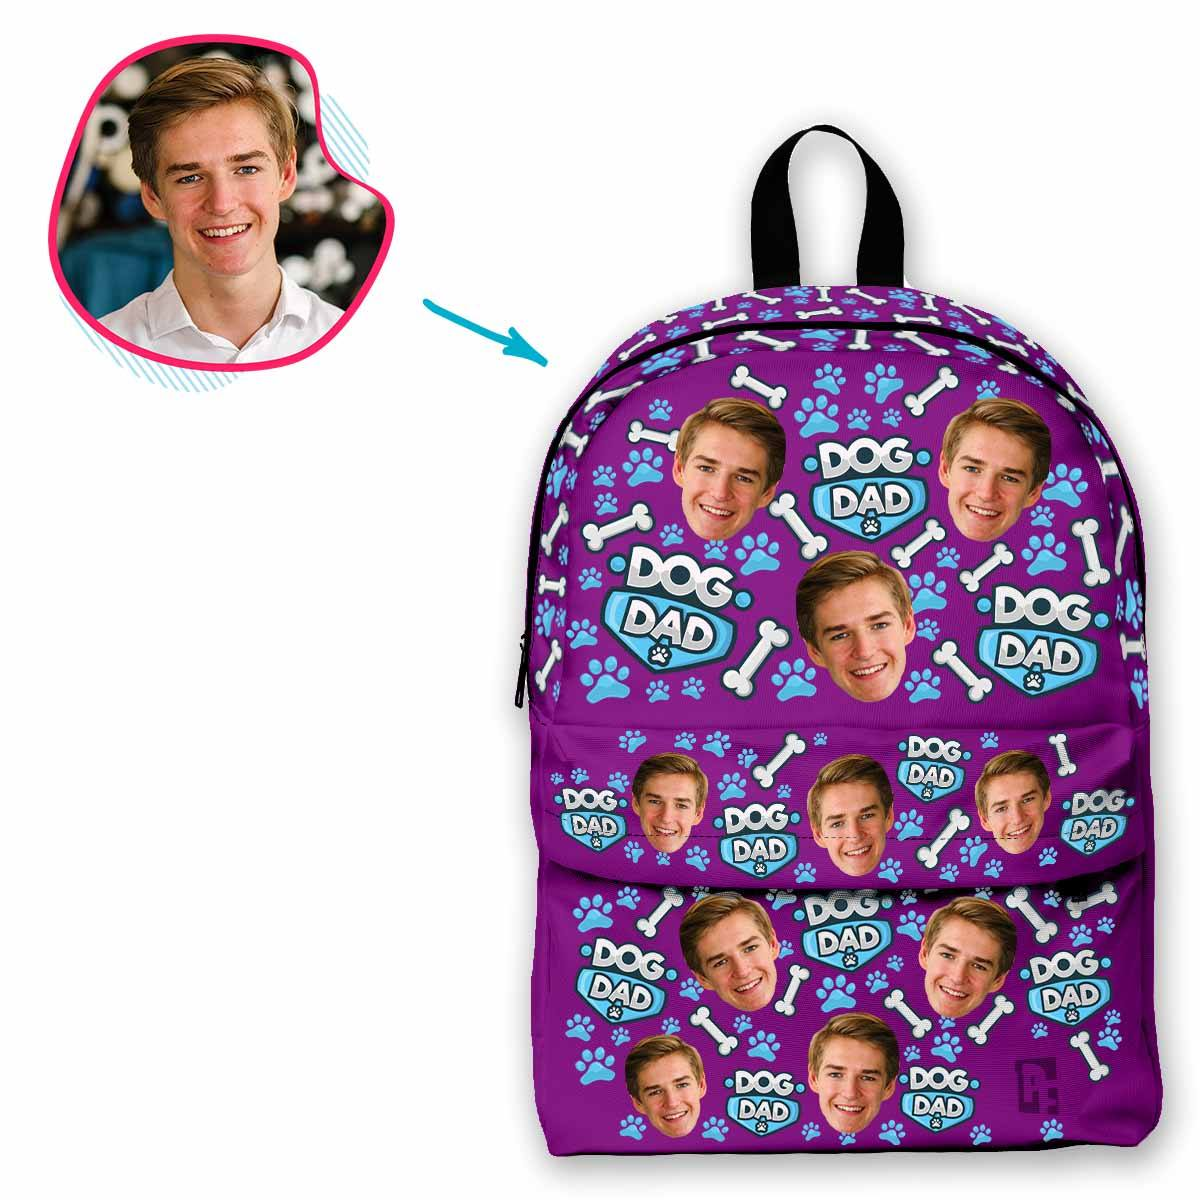 purple Dog Dad classic backpack personalized with photo of face printed on it